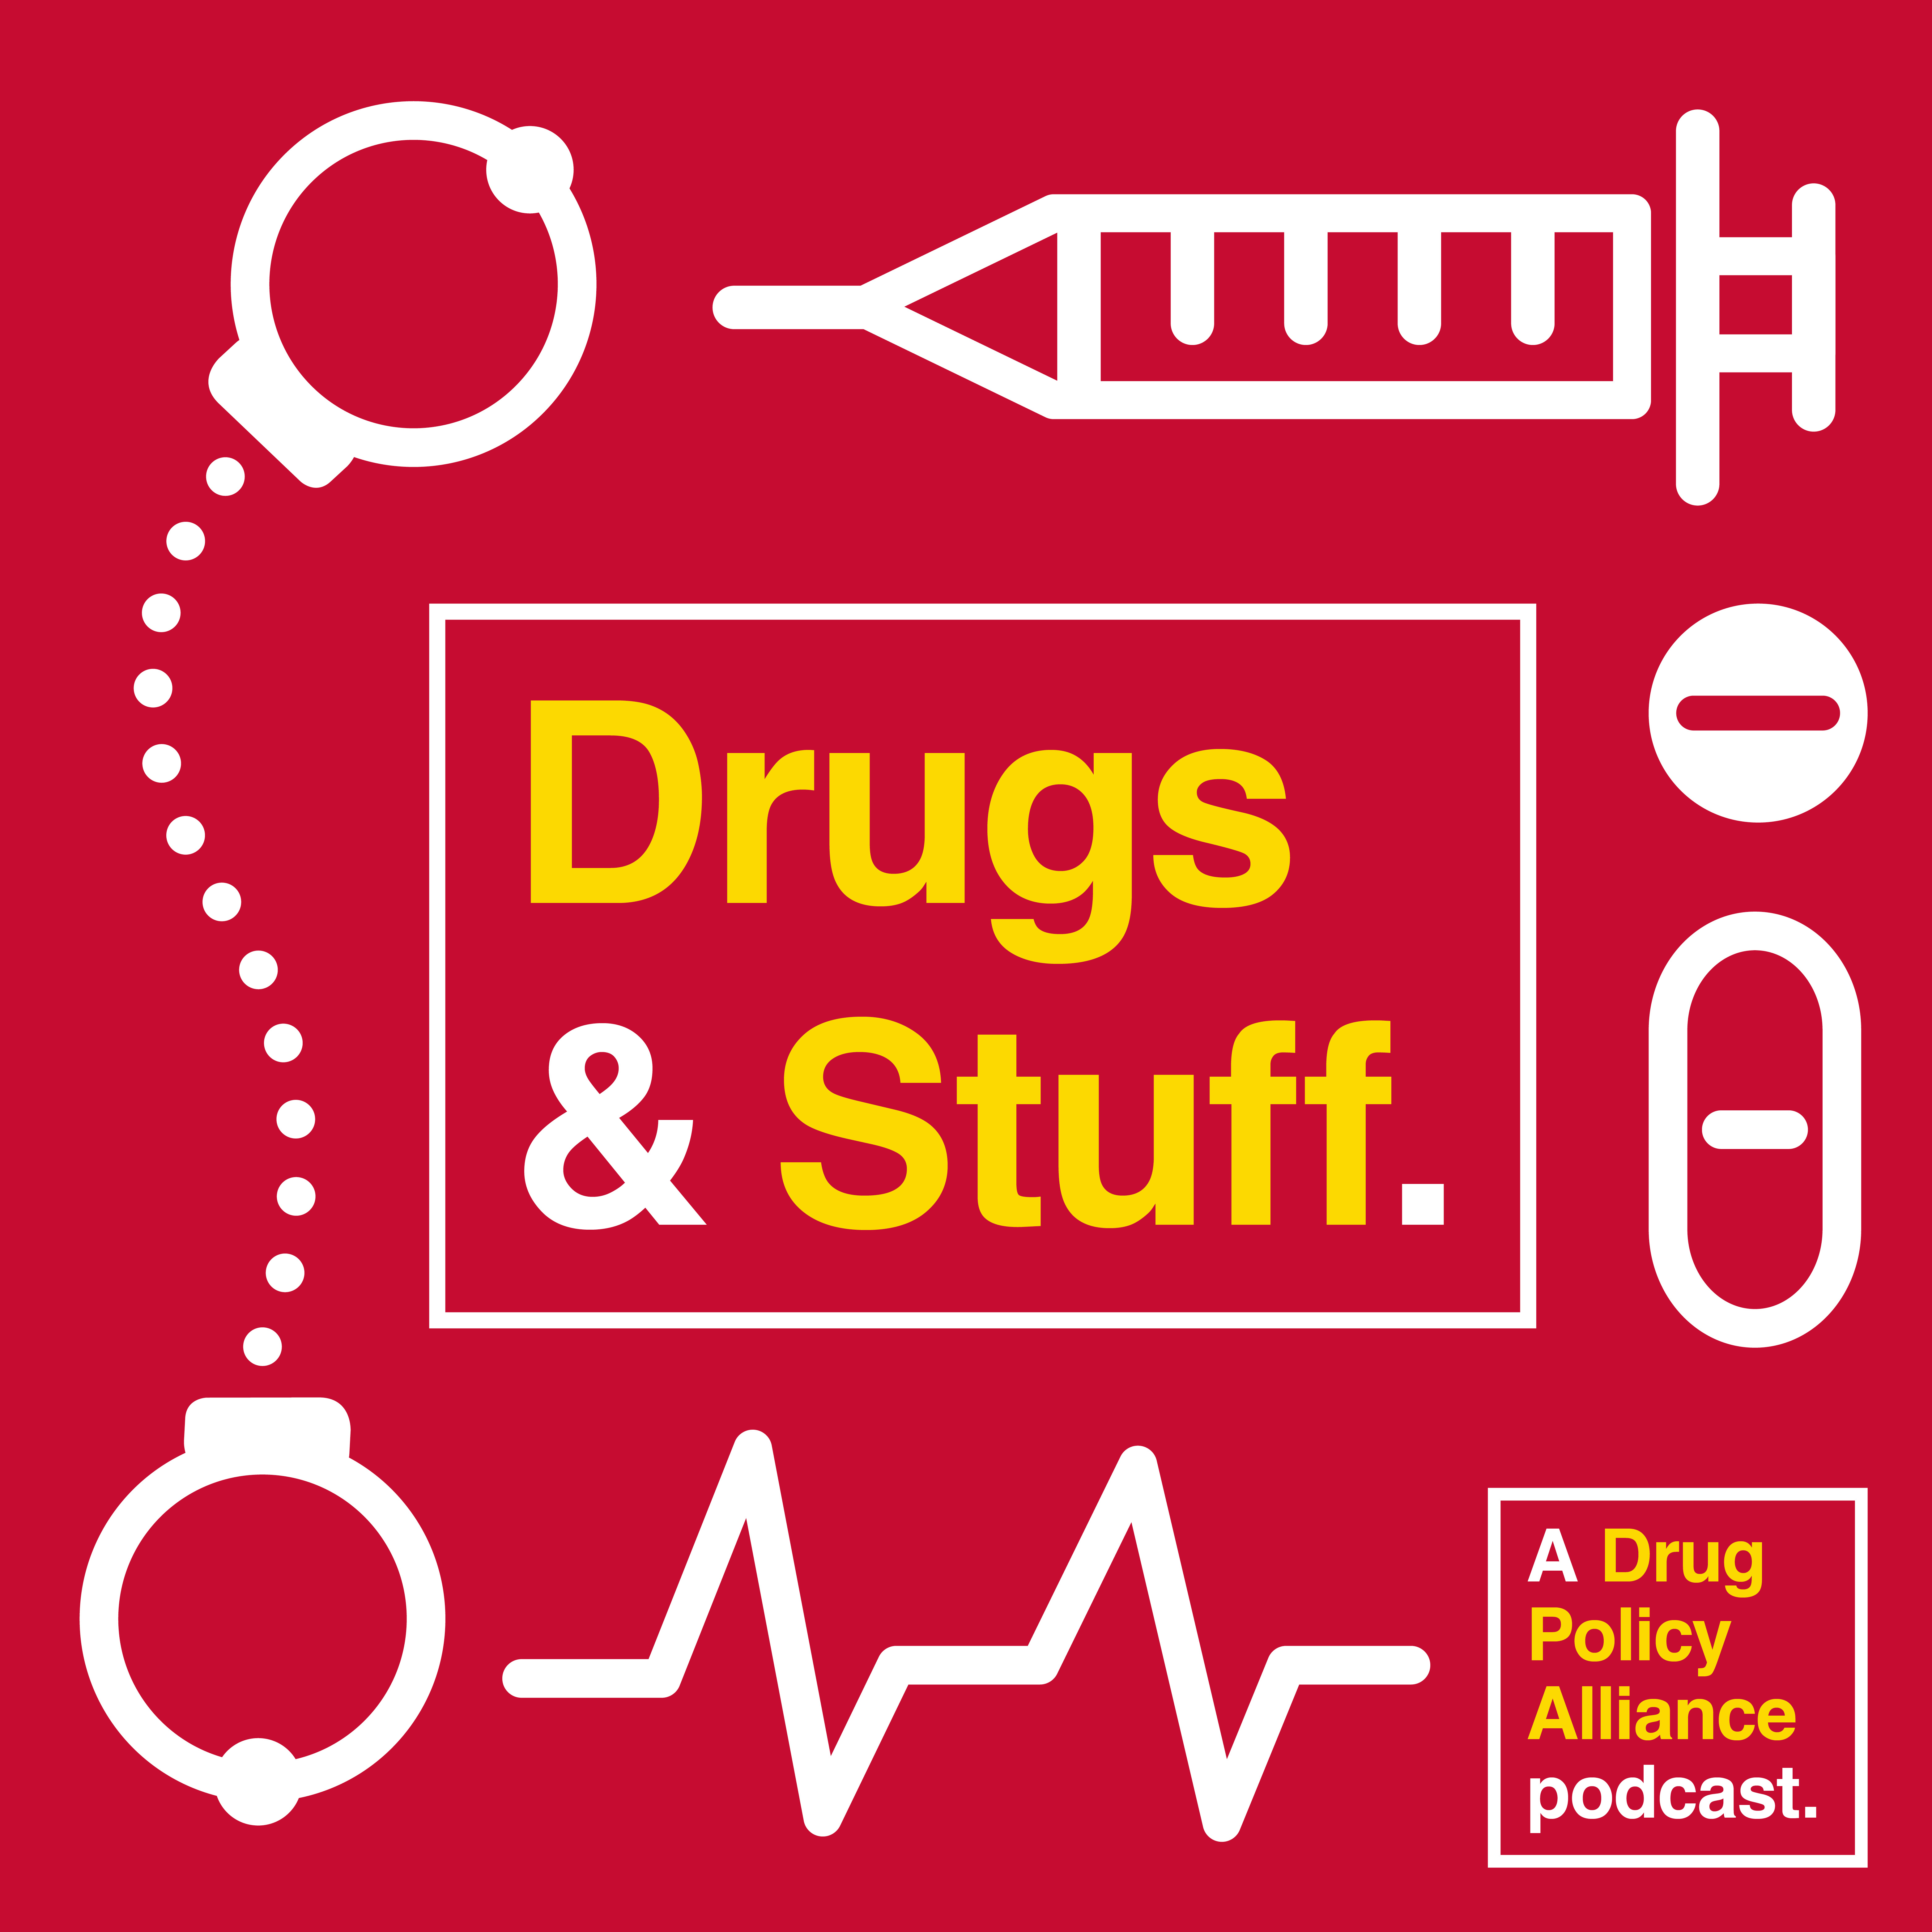 Drugs and Stuff: A Podcast about Drugs, Harm Reduction, Mass Incarceration, The Drug War and other Stuff, from the Drug Policy Alliance show art